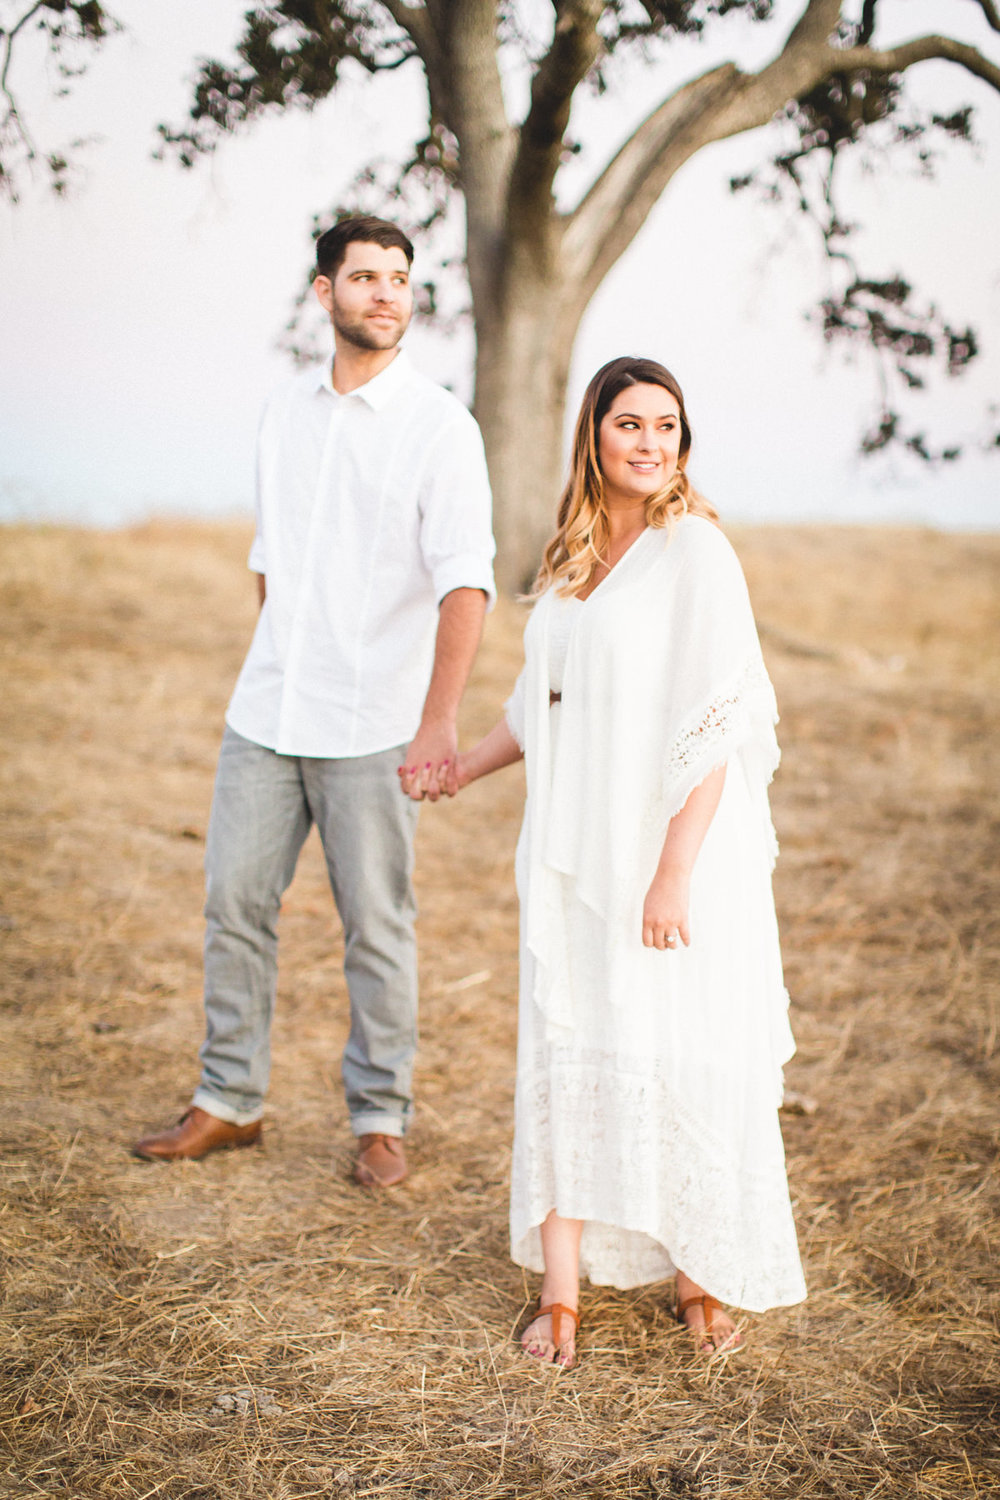 the-light-and-glass-wedding-engagement-photography-20160712-20-19-1.jpg